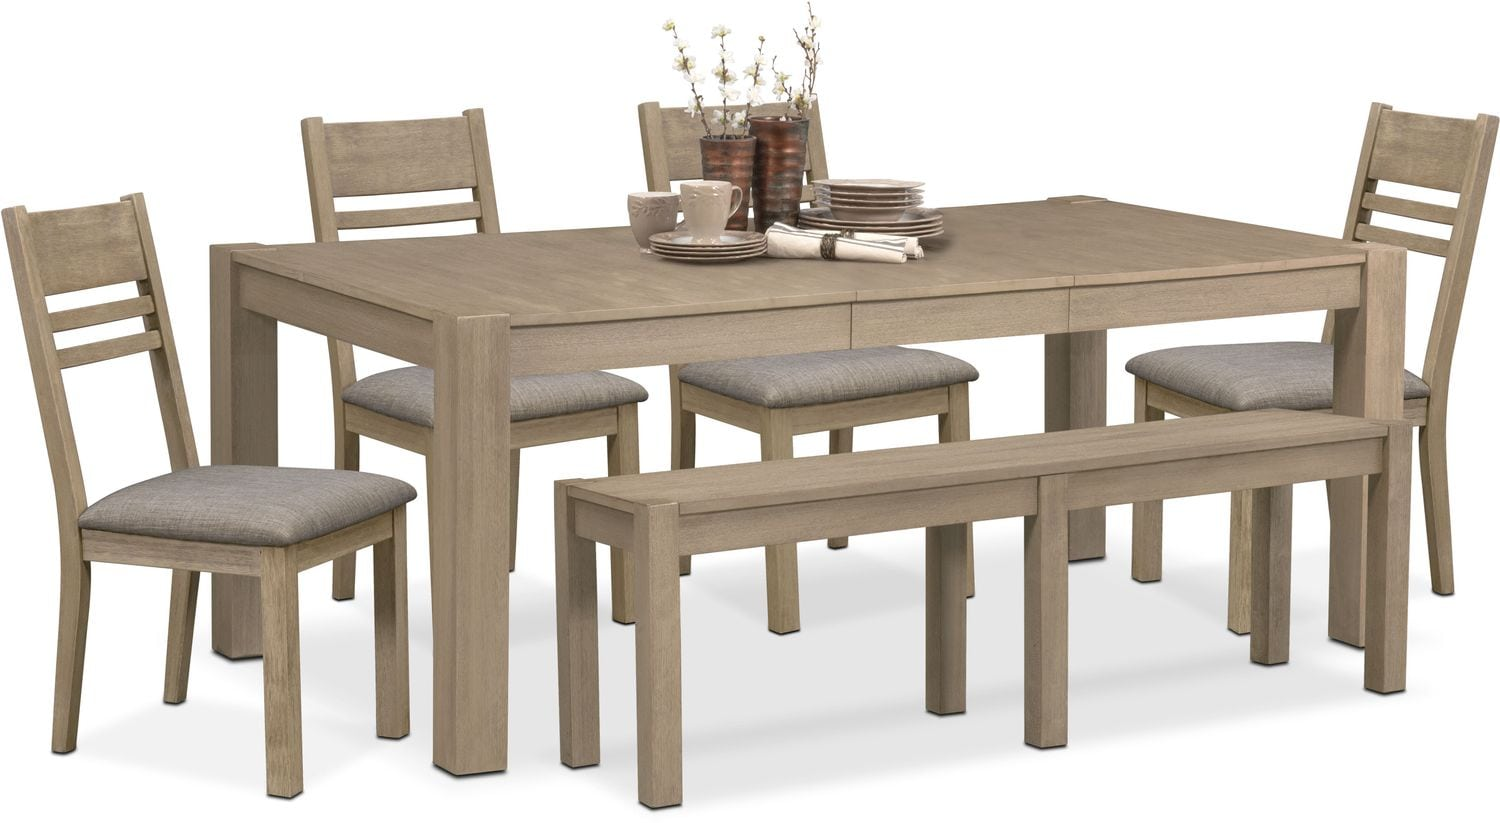 Dining Room Furniture - Tribeca Table, 4 Side Chairs and Bench - Gray